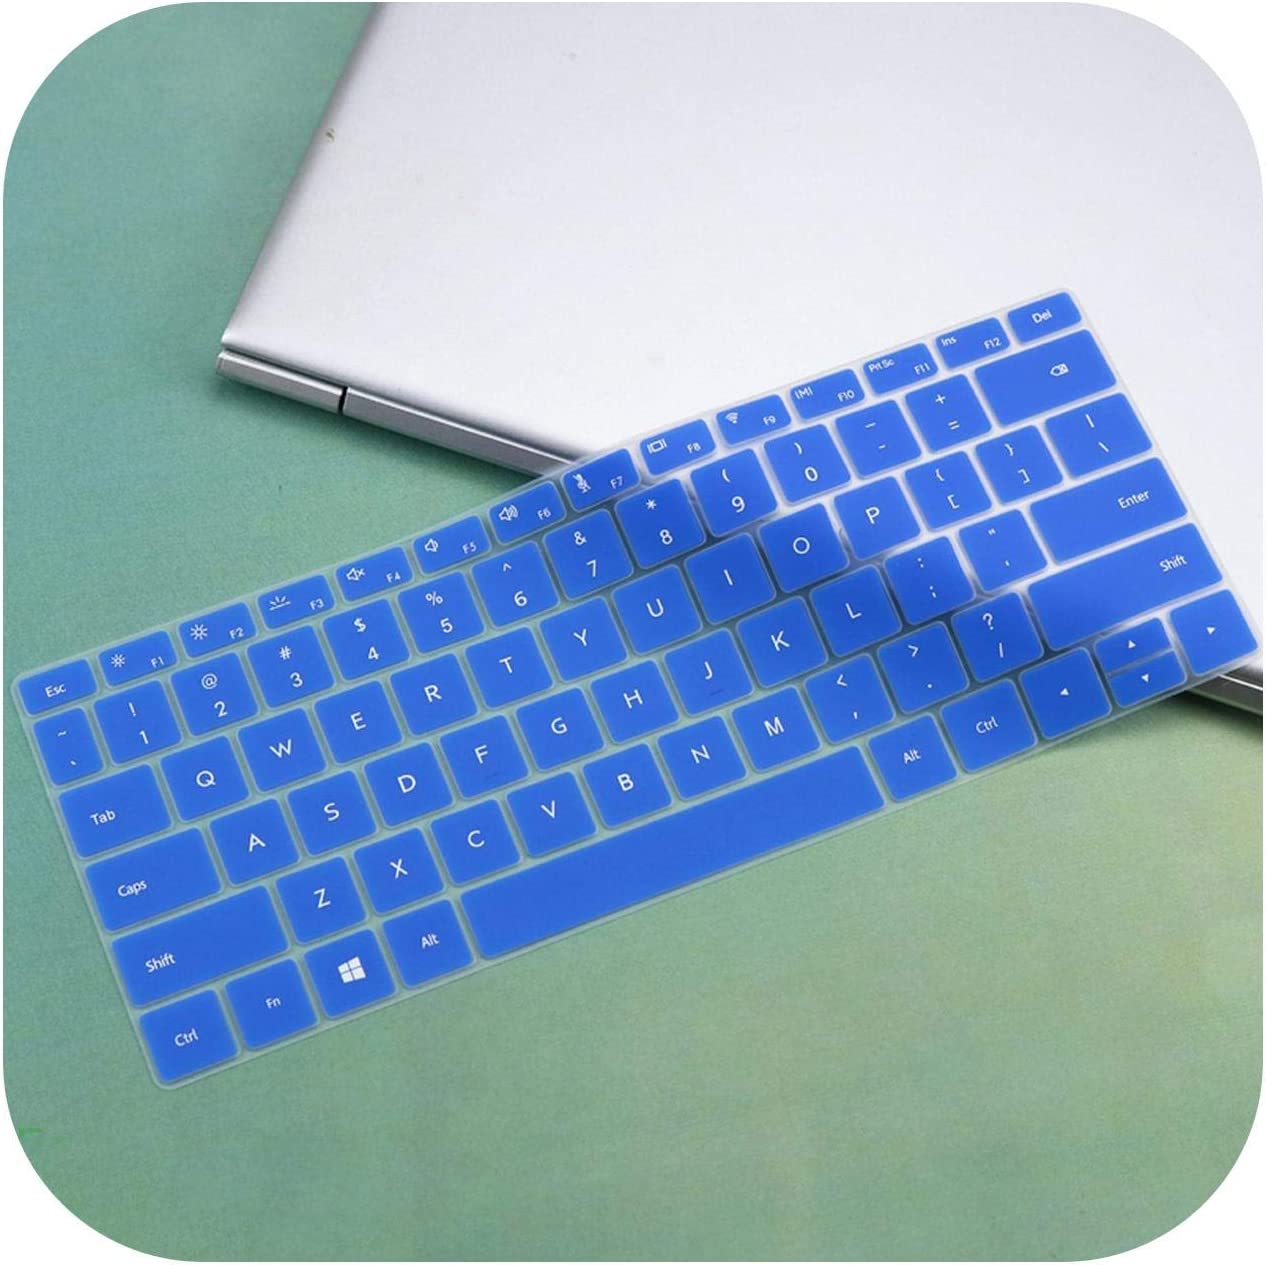 Notebook D14 14.0 Silicone Laptop Keyboard Cover Protector Skin-Candyblue AMD for Huawei Matebook D 14 Inch